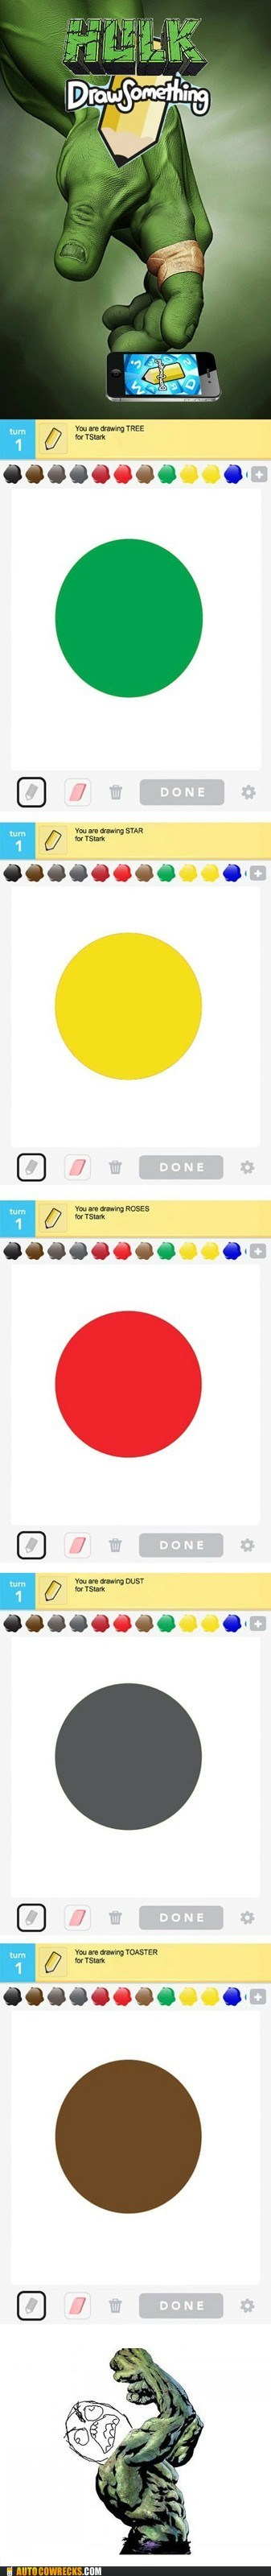 AutocoWrecks draw something fat fingers g rated iPhones the hulk